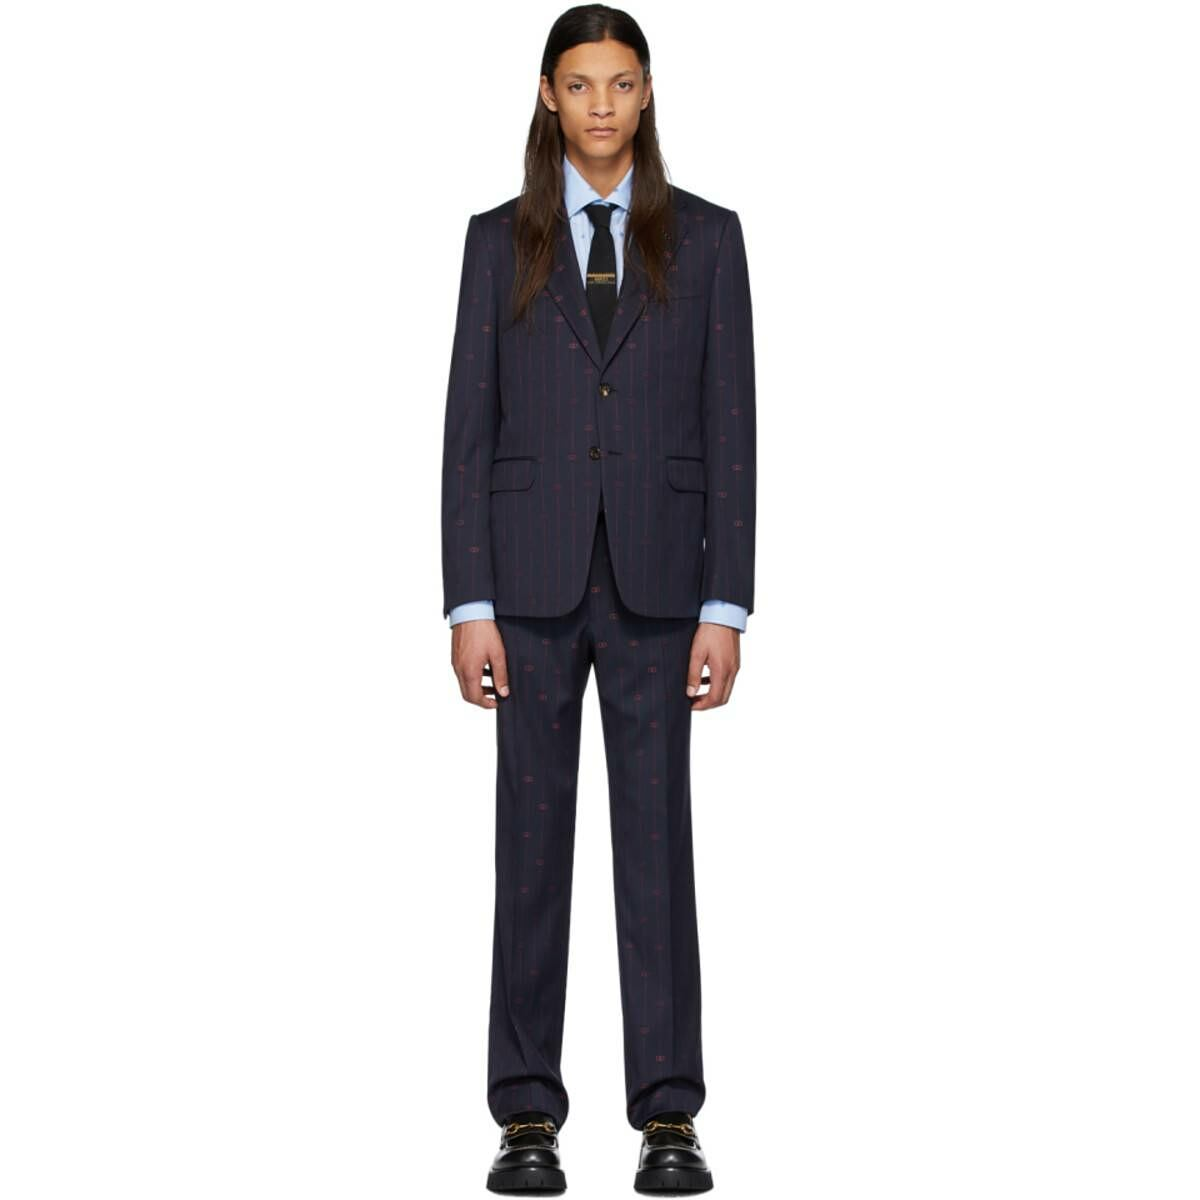 Gucci Navy and Pink GG Pinstripe Suit Ssense USA MEN Men FASHION Mens SUITS